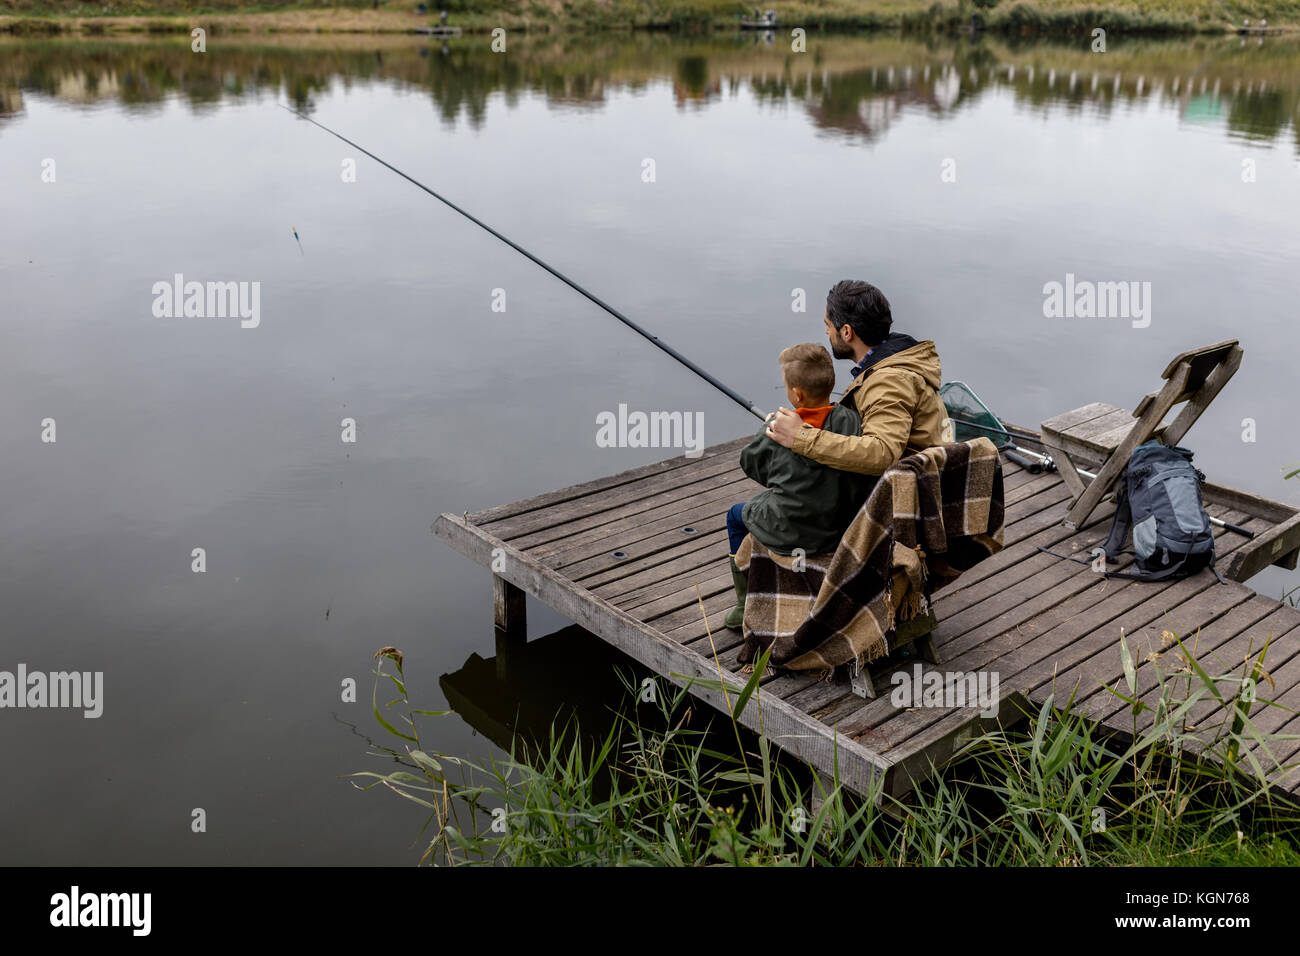 father and son fishing on pier - Stock Image